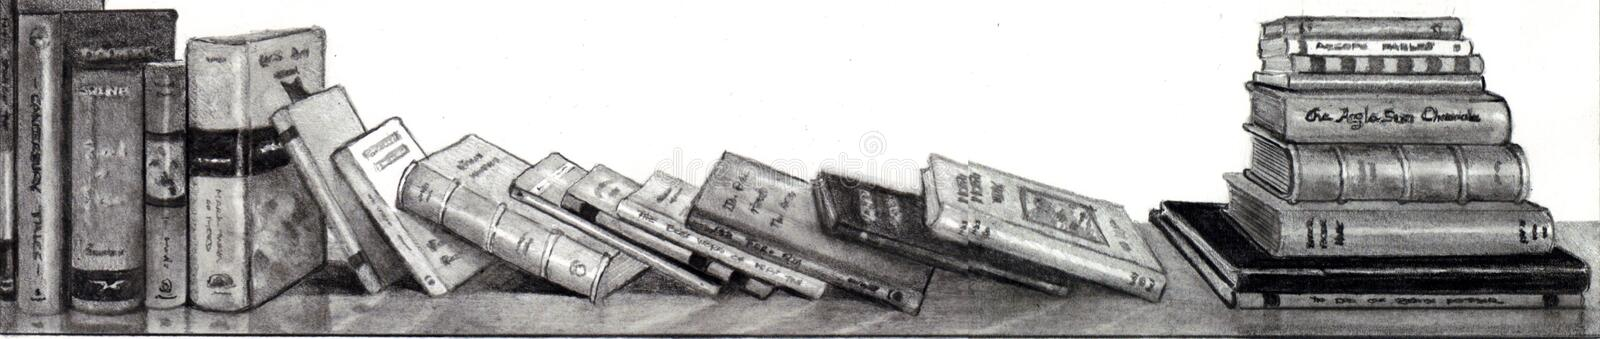 Download Pencil Drawing of Books stock illustration. Image of reading - 14185487